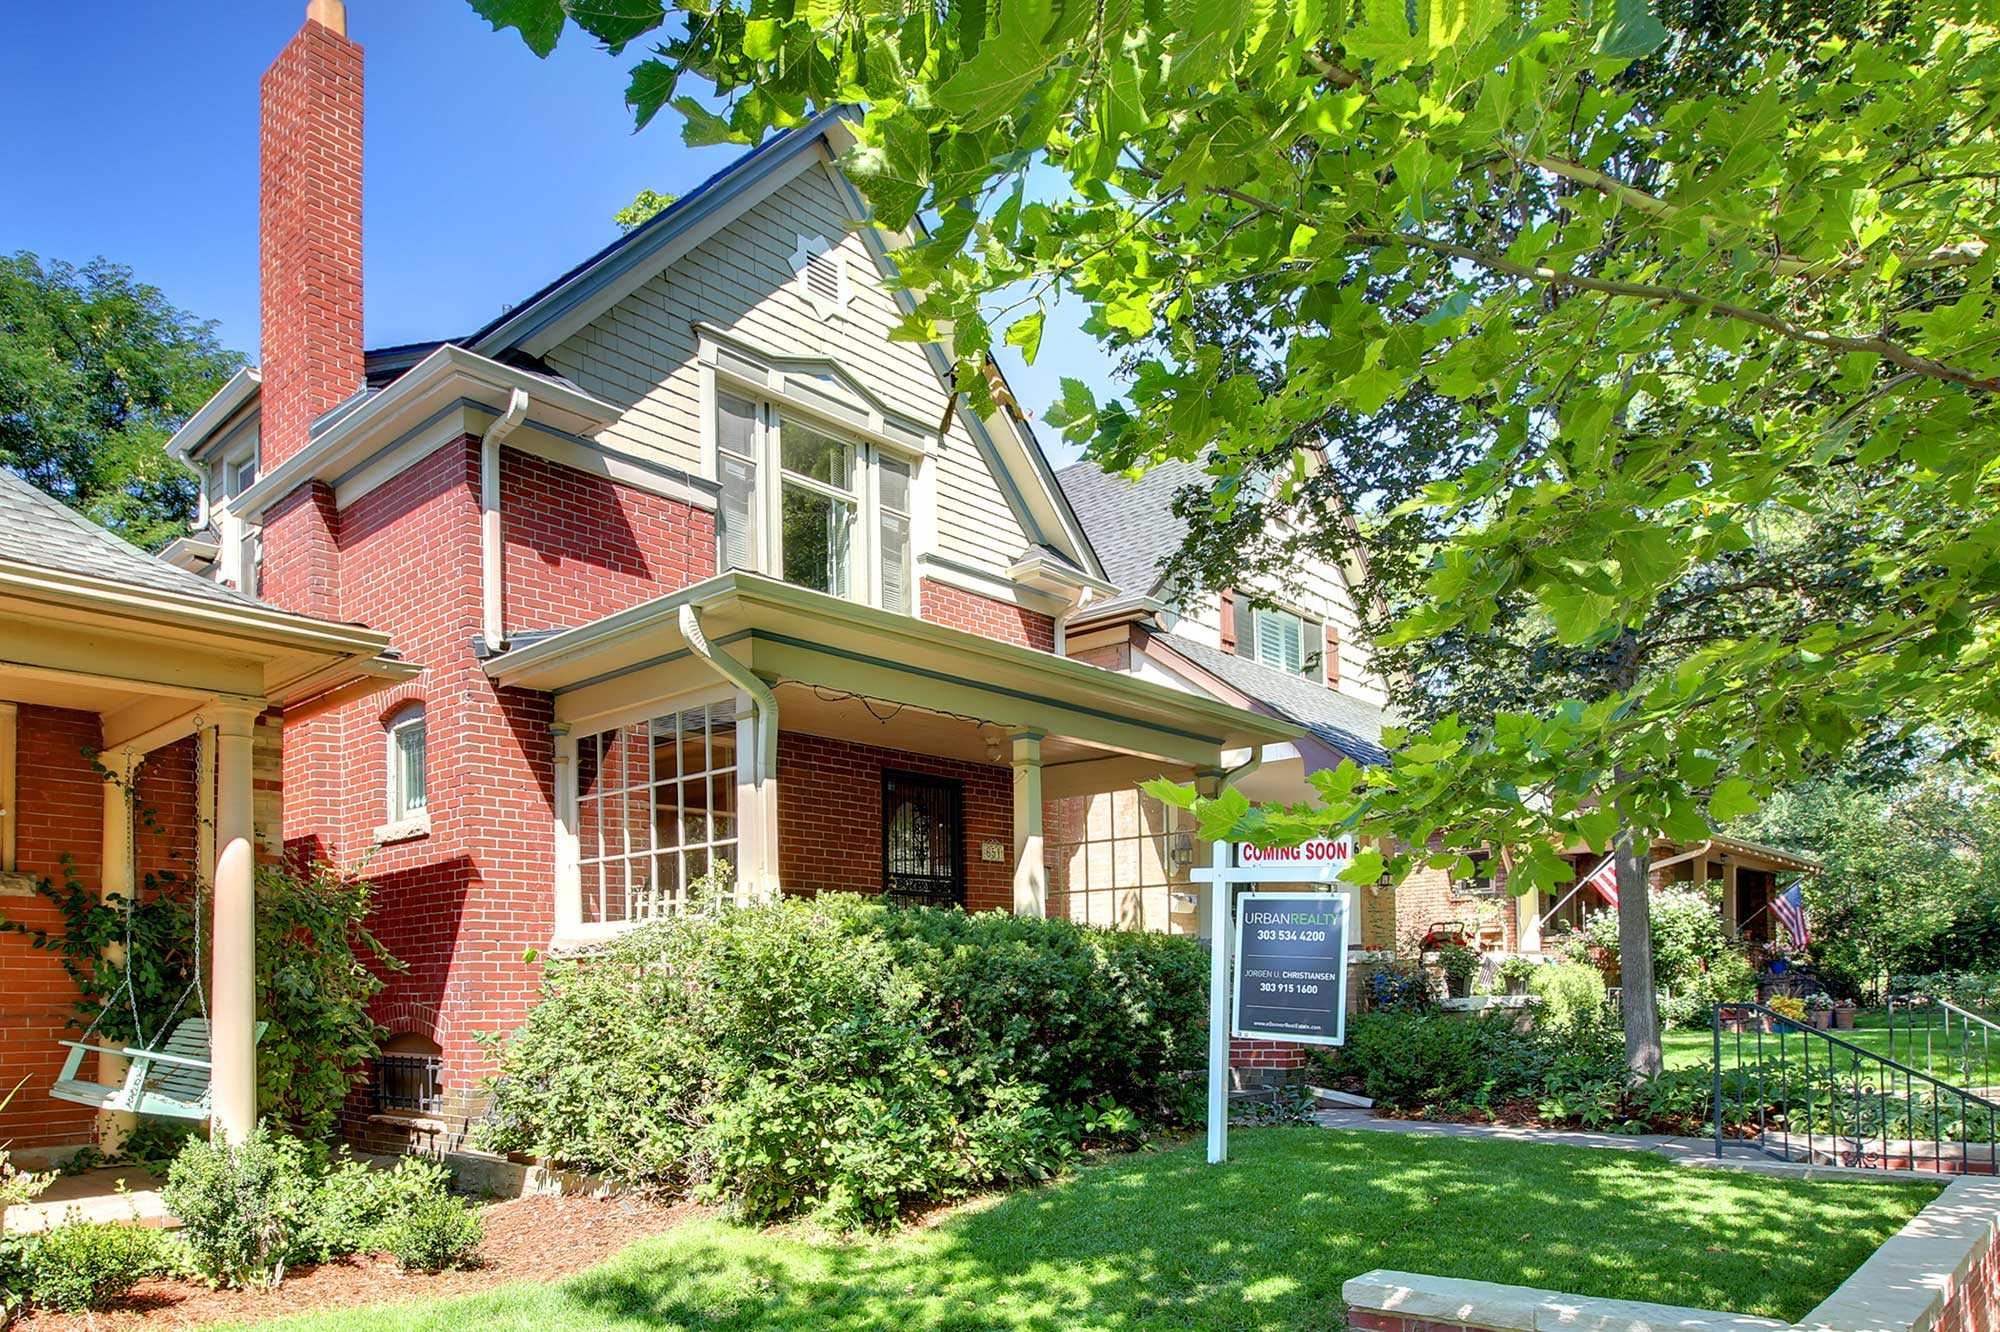 Victorian home for sale Denverat 7th Ave Historic District – Stunning two-story Victorian